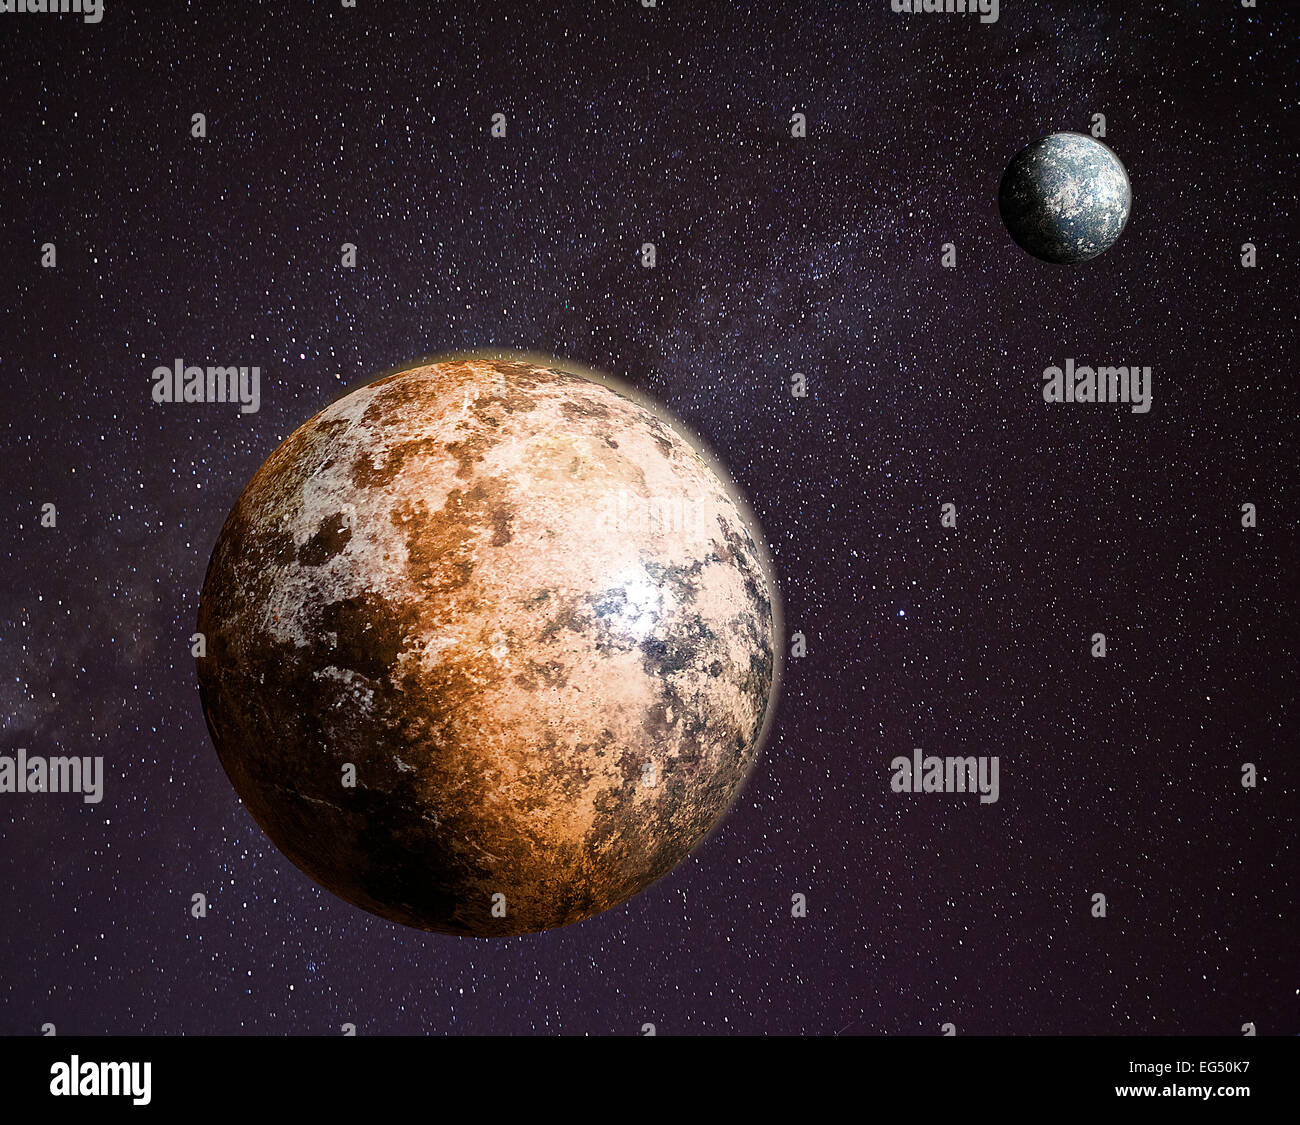 Pluton et Charon - Visualisation Photo Stock